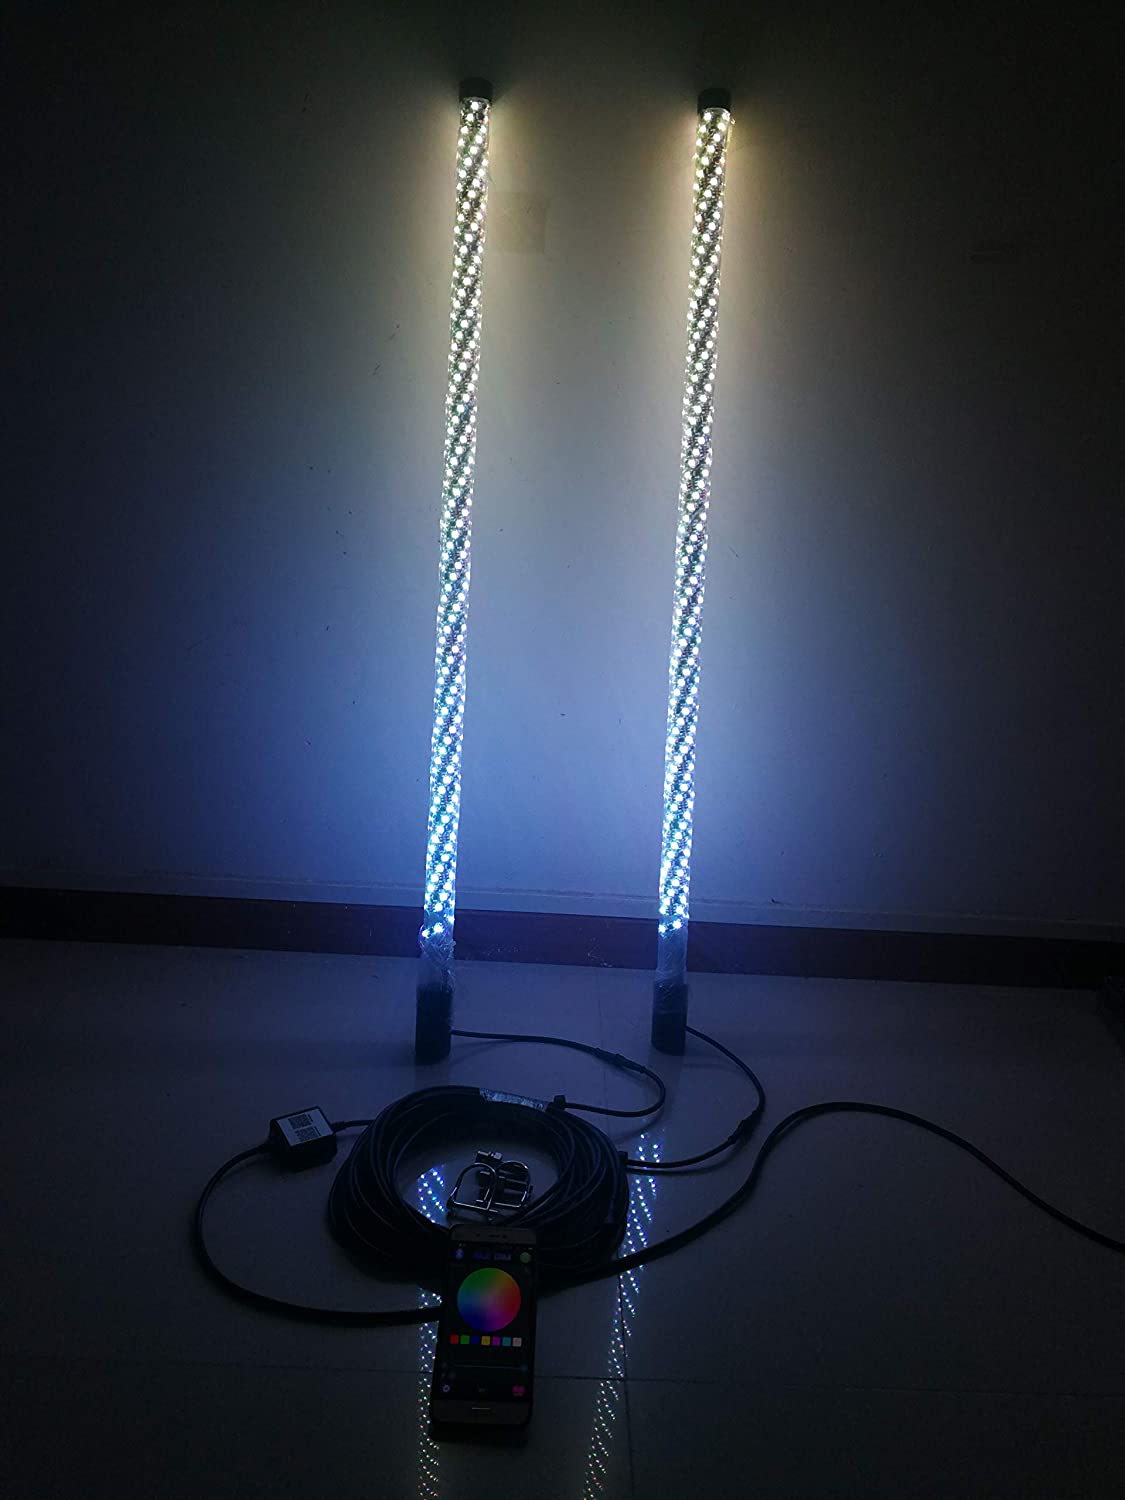 Pair of 4 Feet IP67 Waterproof Brightest RGB LED Whip Lights Wrapped Spiral Twist Blue-tooth App Controlled